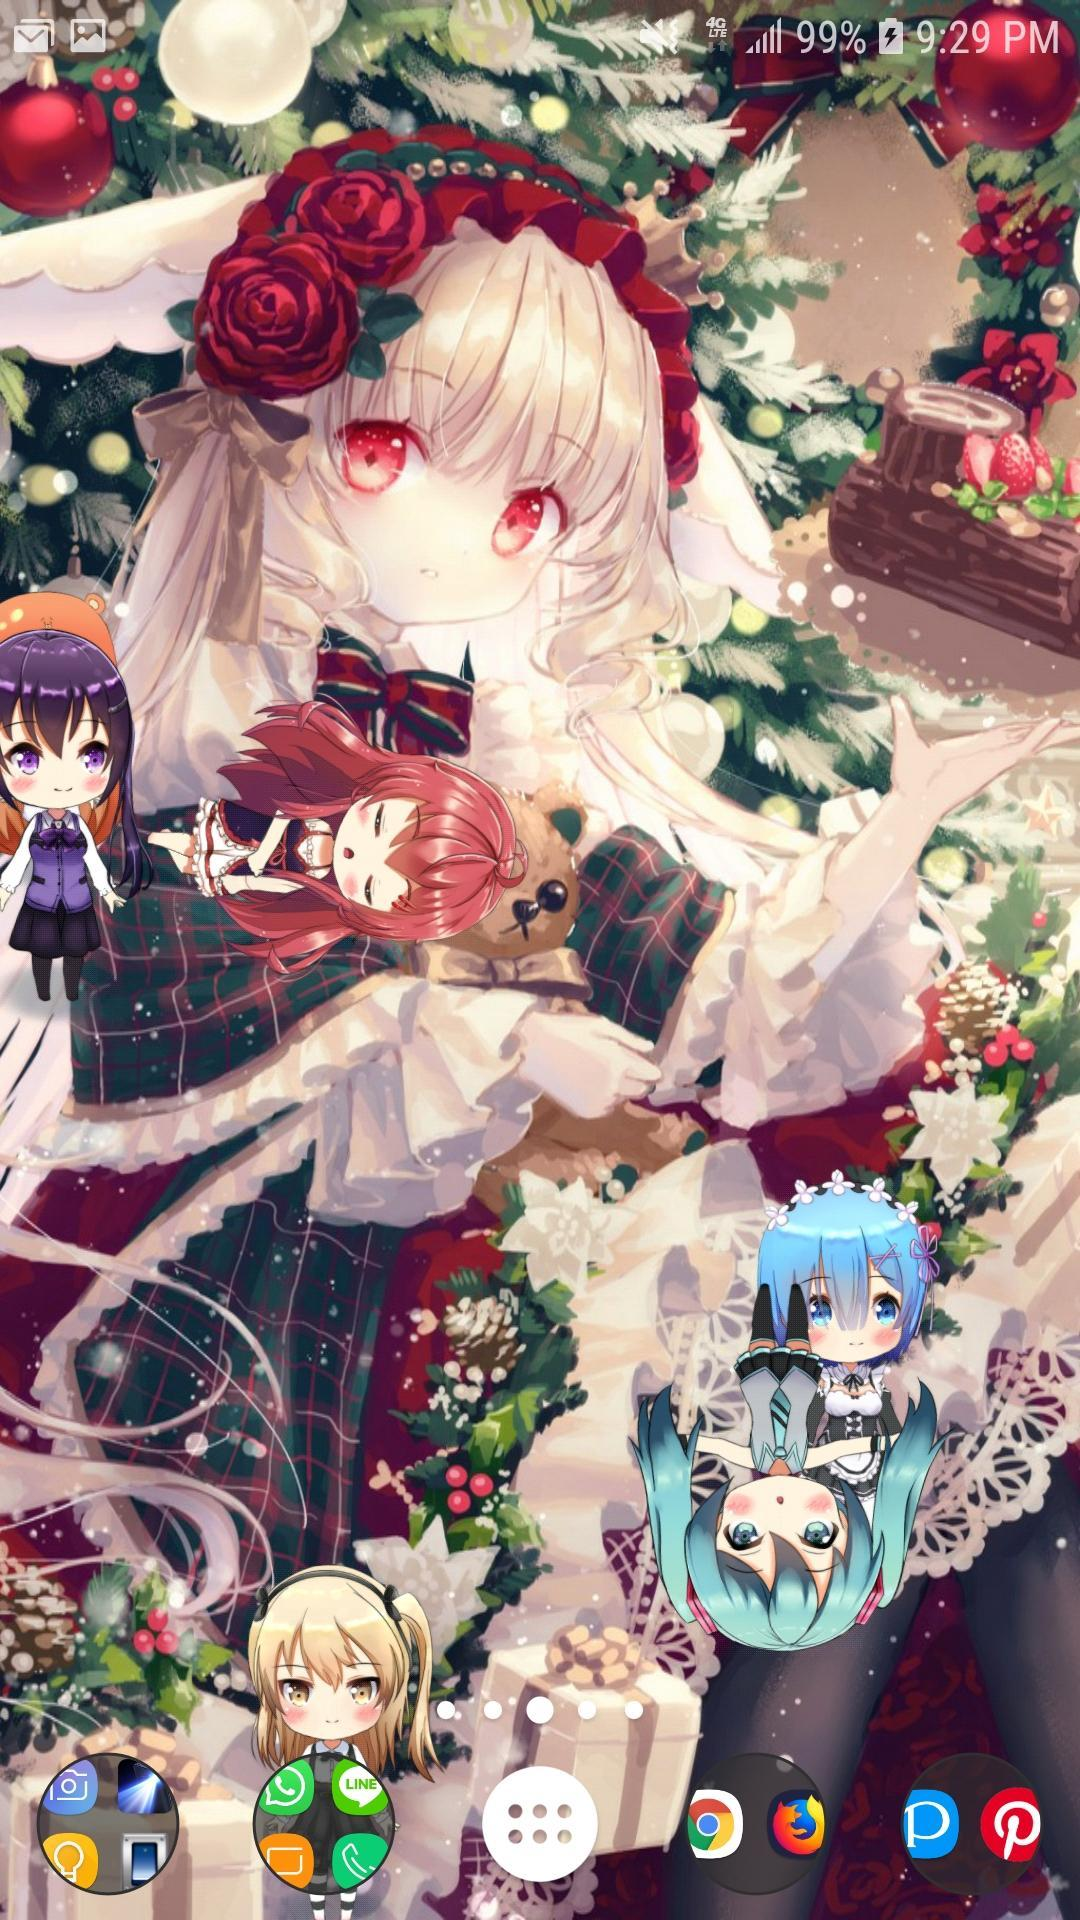 Lively Anime Live Wallpaper for Android - APK Download